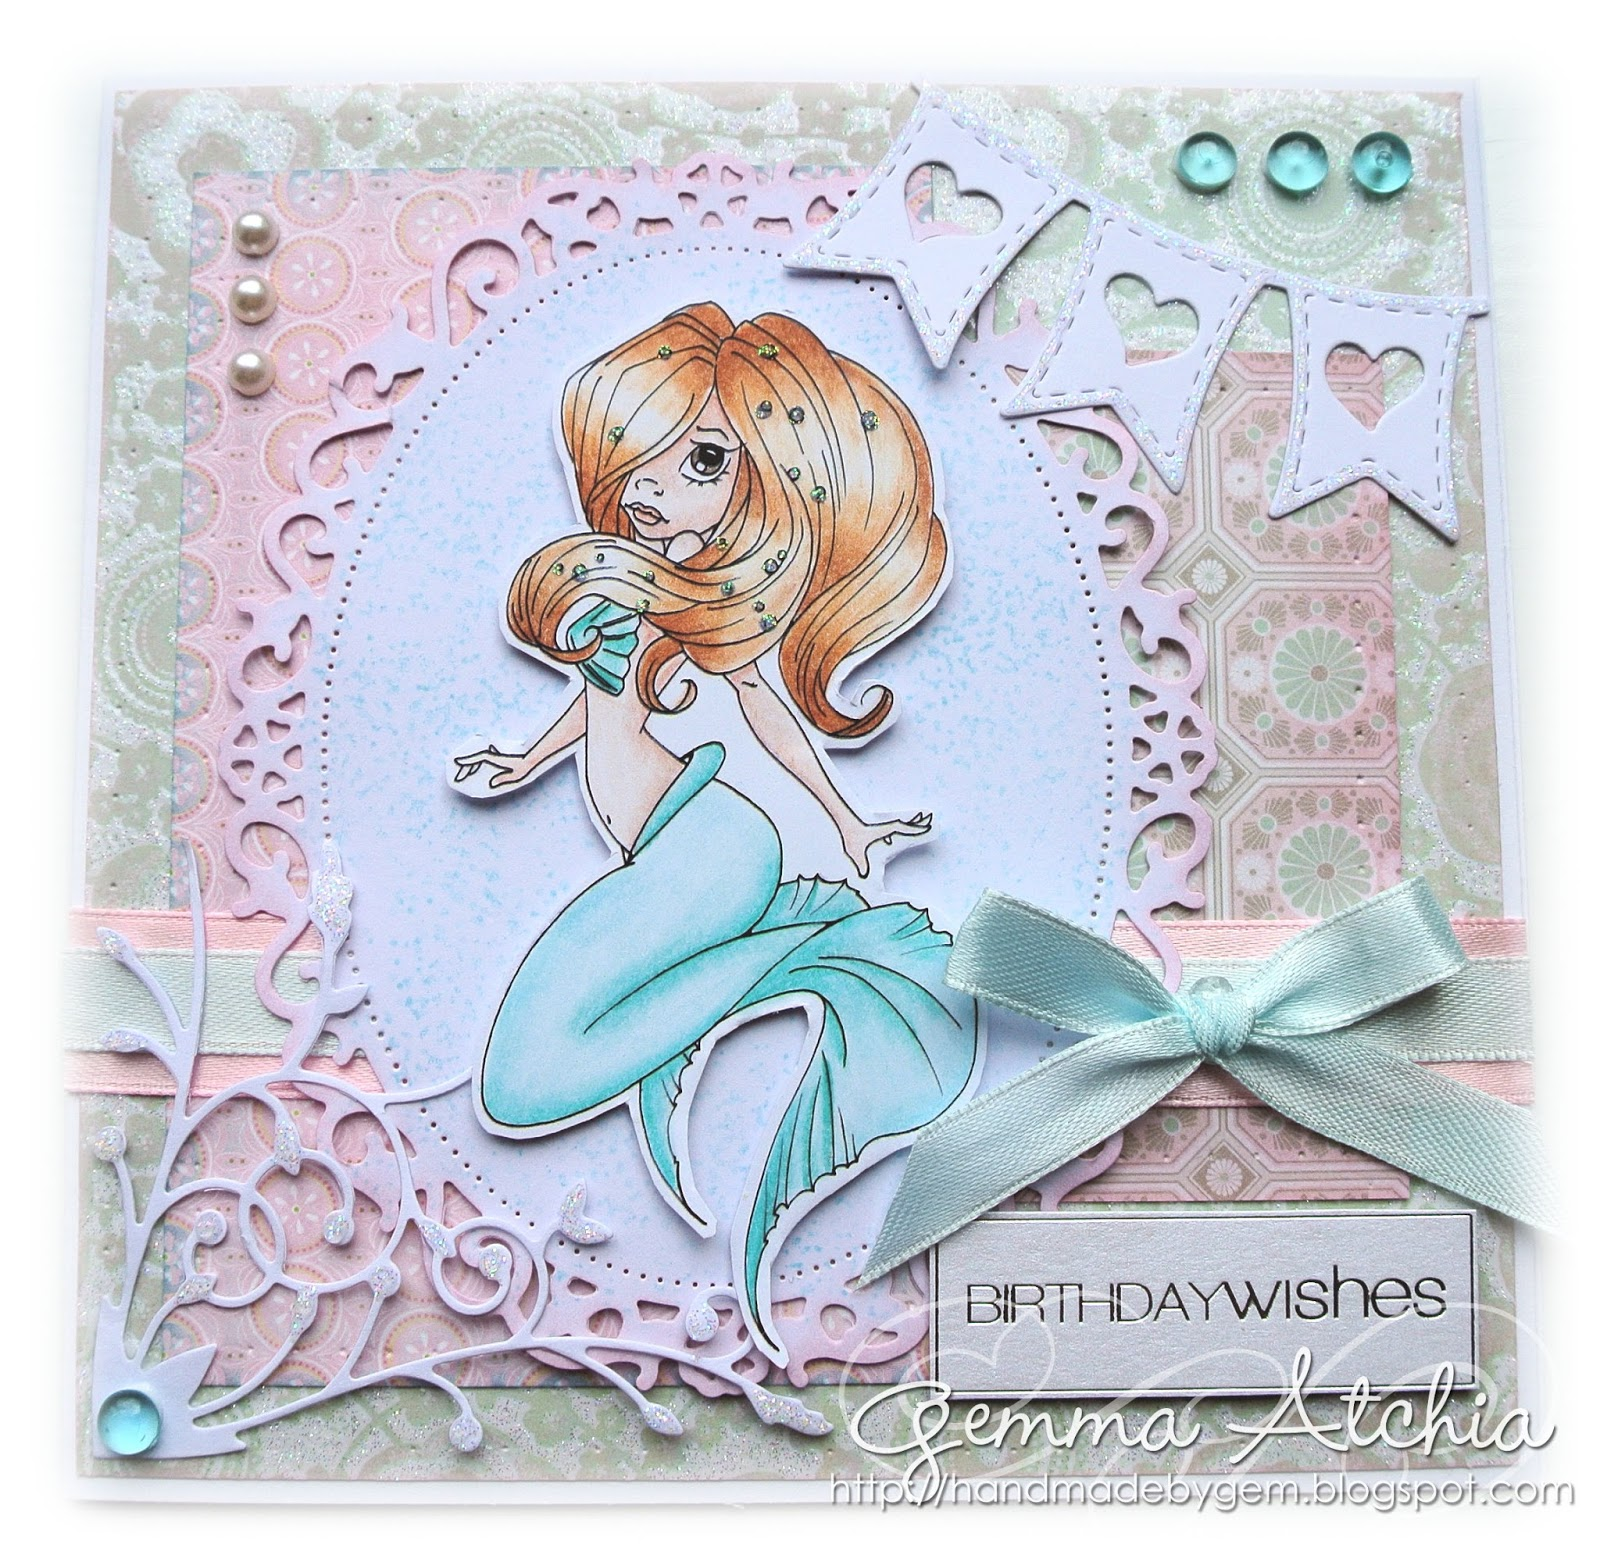 saturated canary mermaid, prismacolour pencils, banner, hearts, gems, die cuts, ovals, bows, ribon